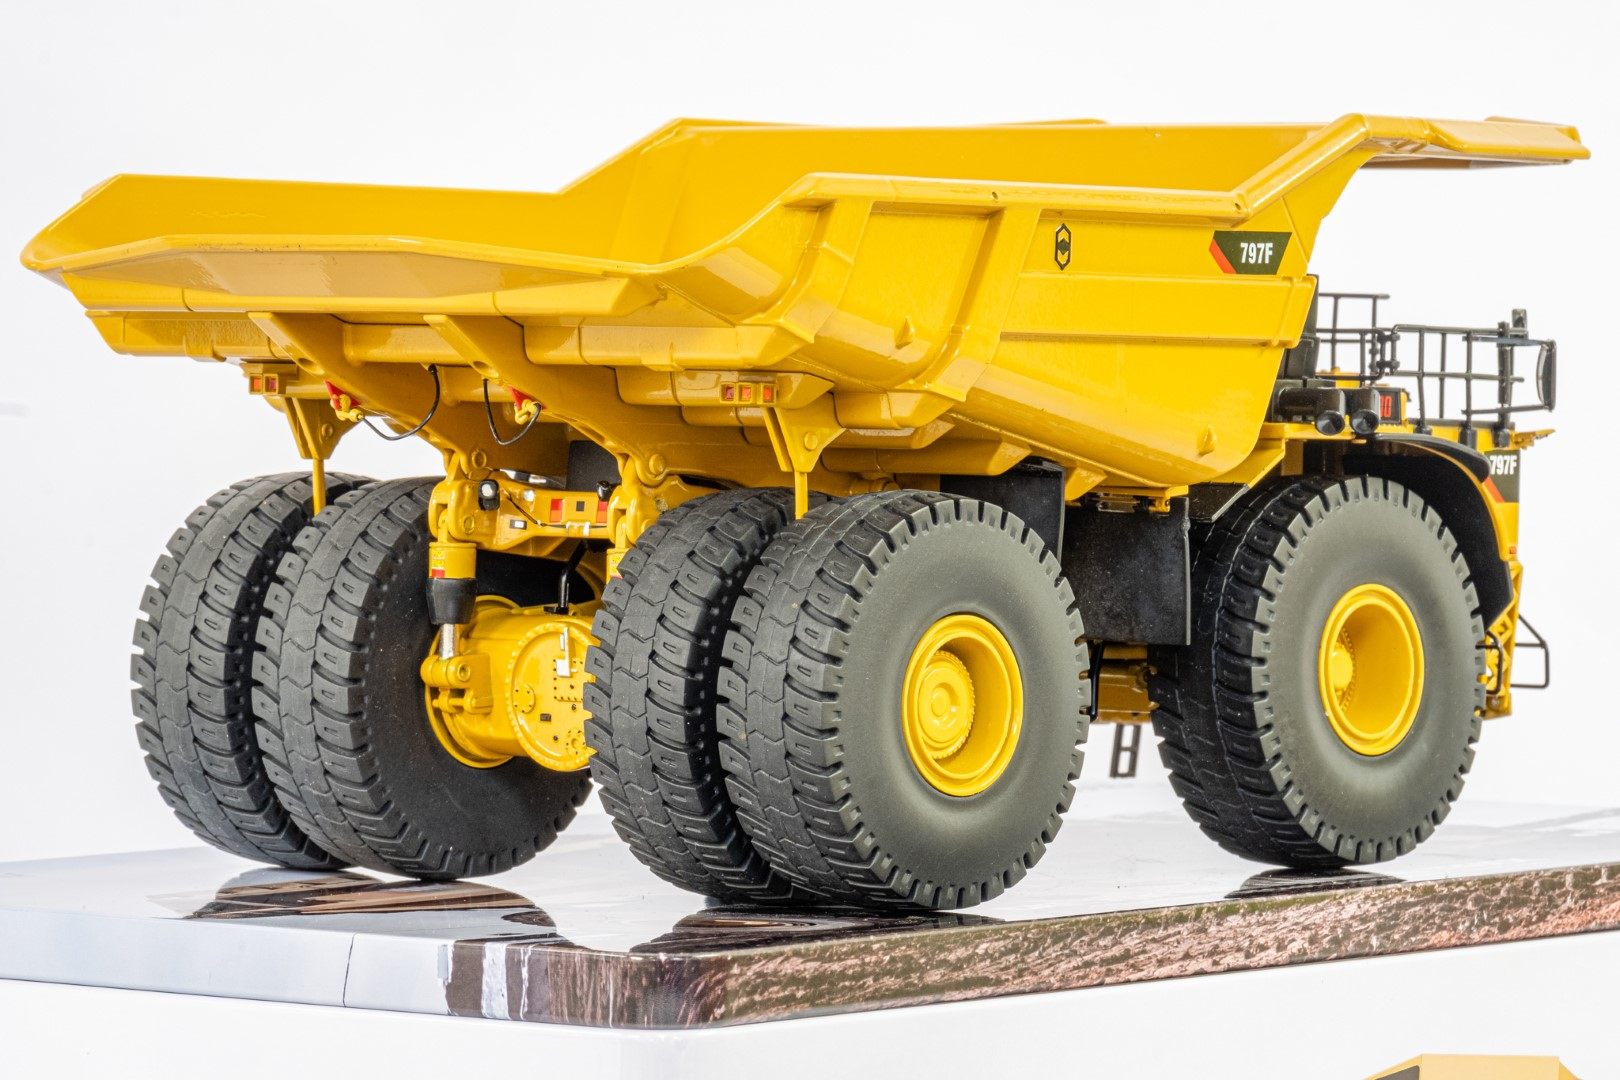 Diecast Masters CAT 797F Tier 4 Mining Truck - Mint condition - Image 5 of 6